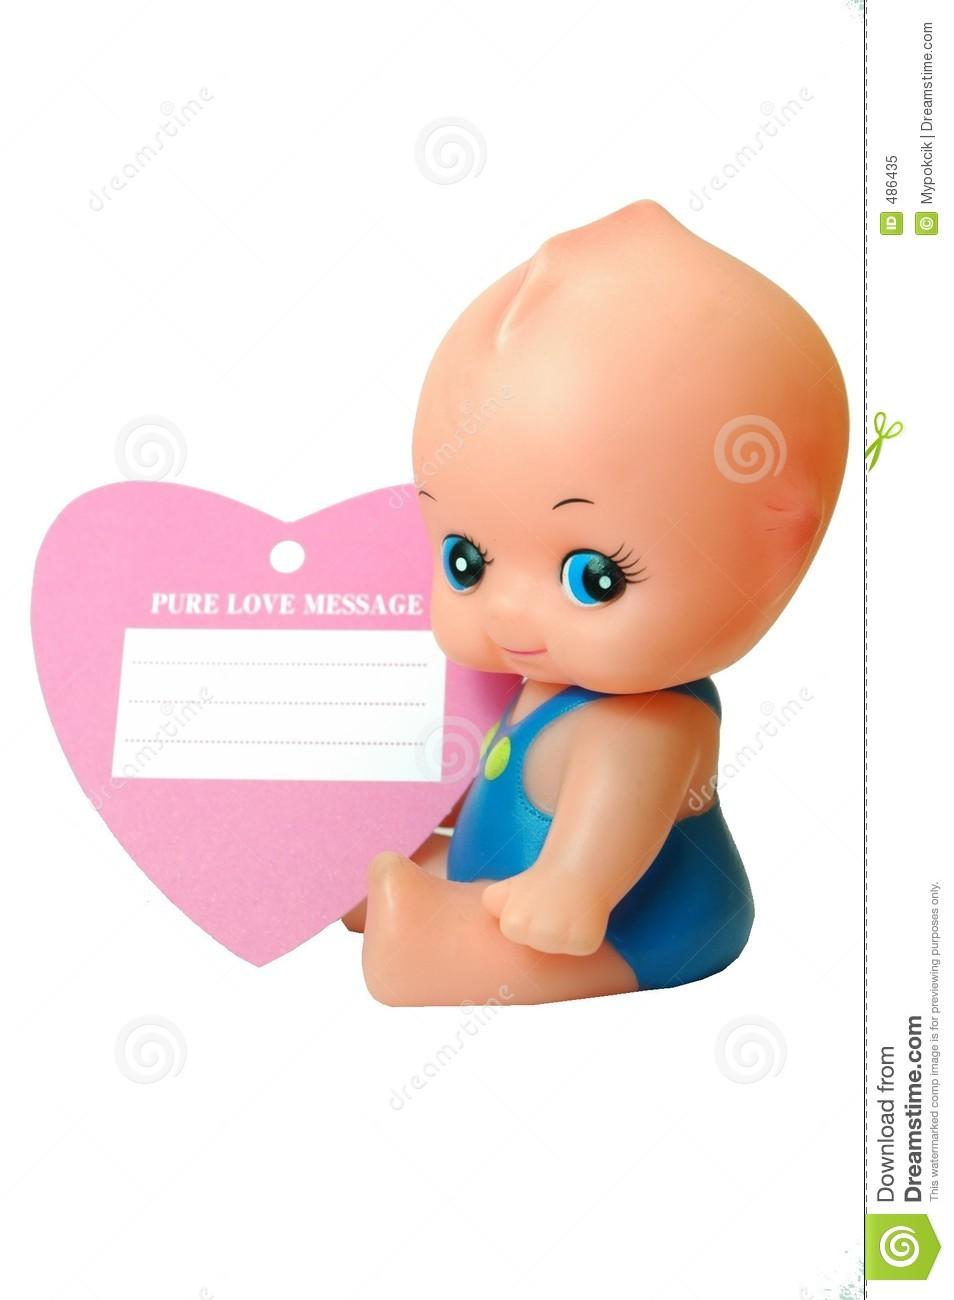 baby doll with pure love card royalty free stock photo